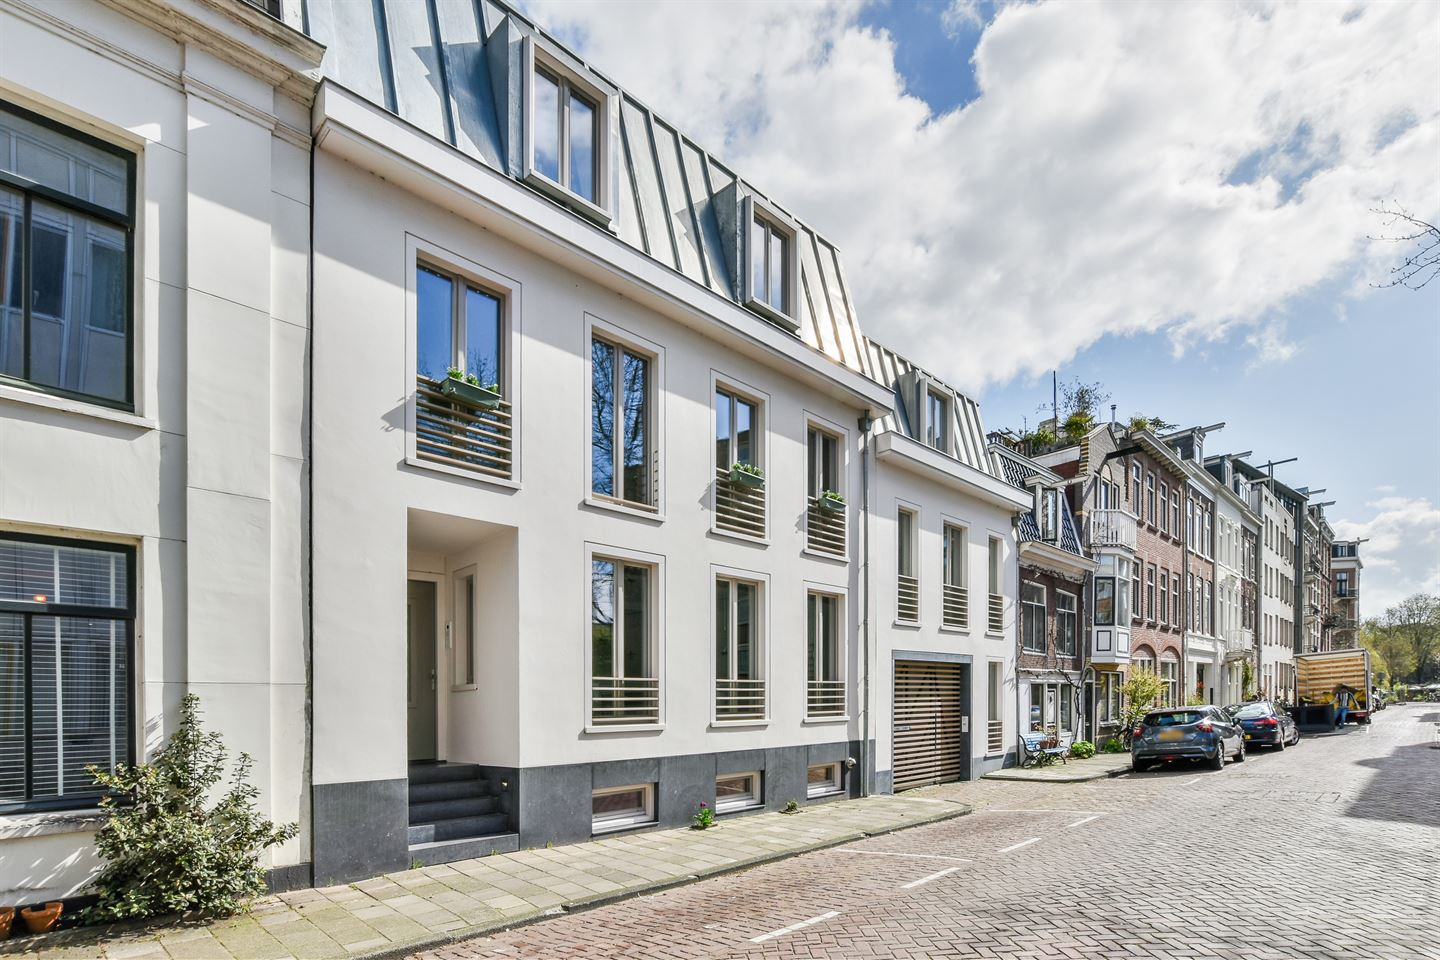 View photo 2 of Plantage Muidergracht 105 A